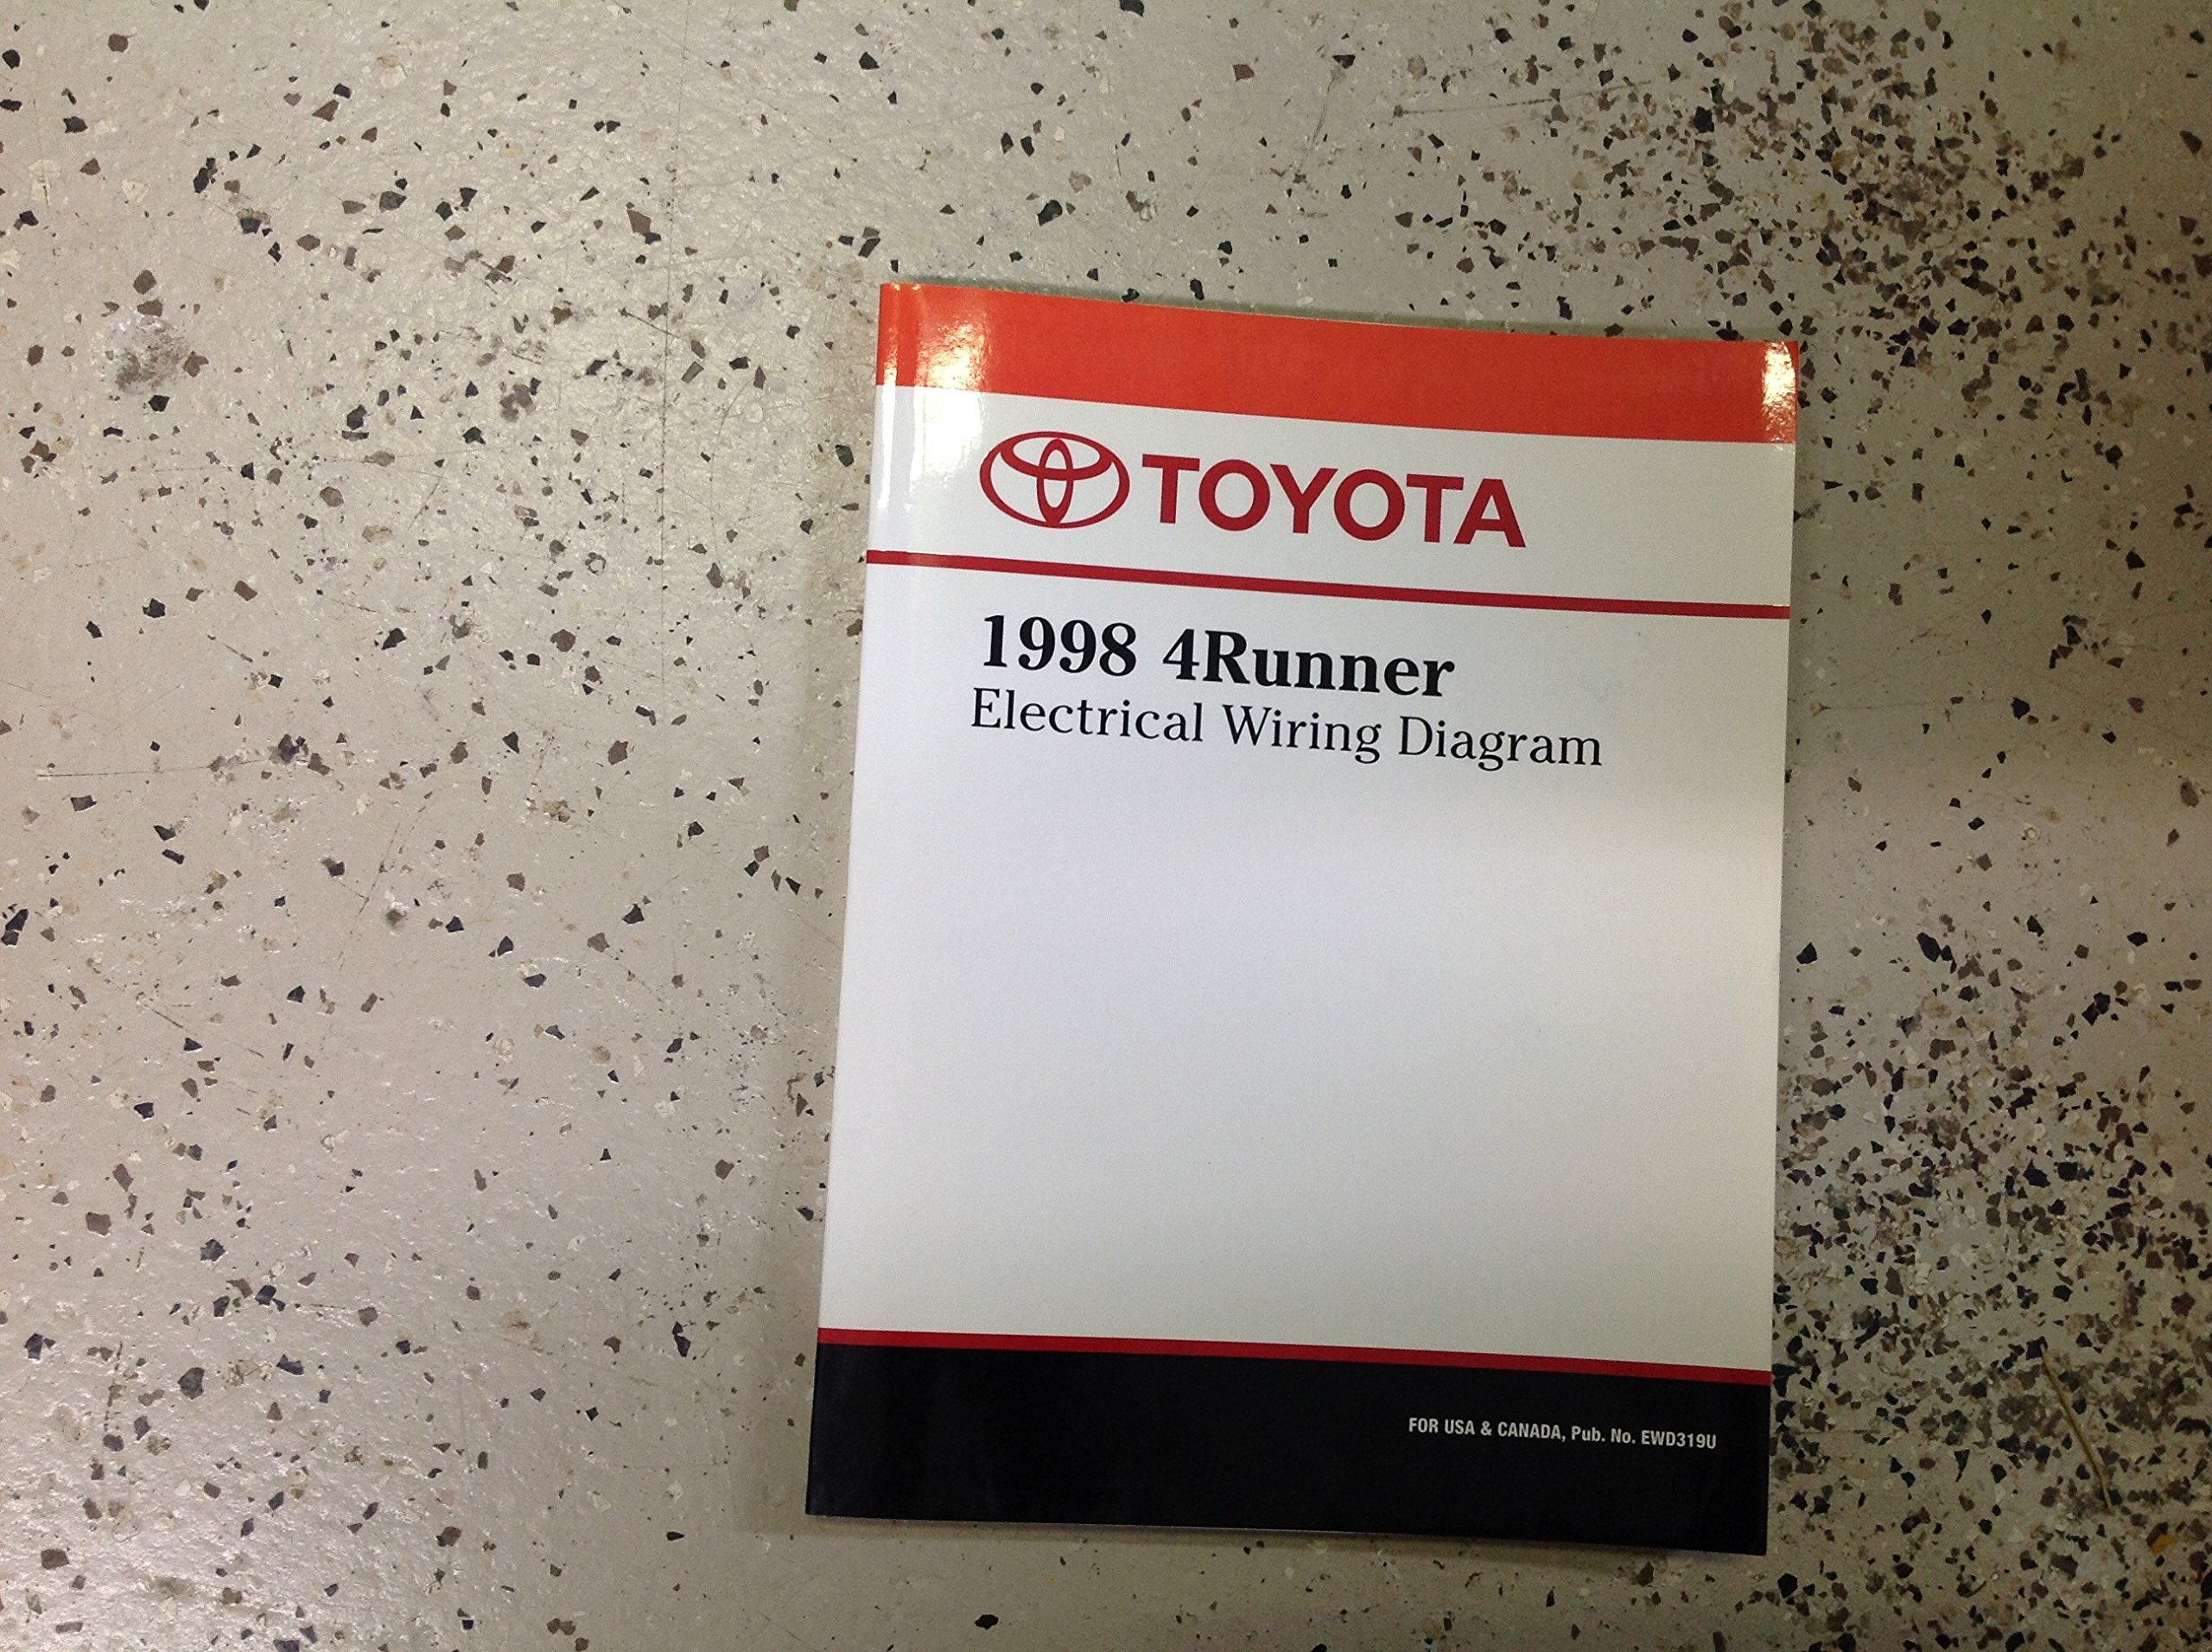 1998 Toyota 4Runner Wiring Diagram from images-na.ssl-images-amazon.com